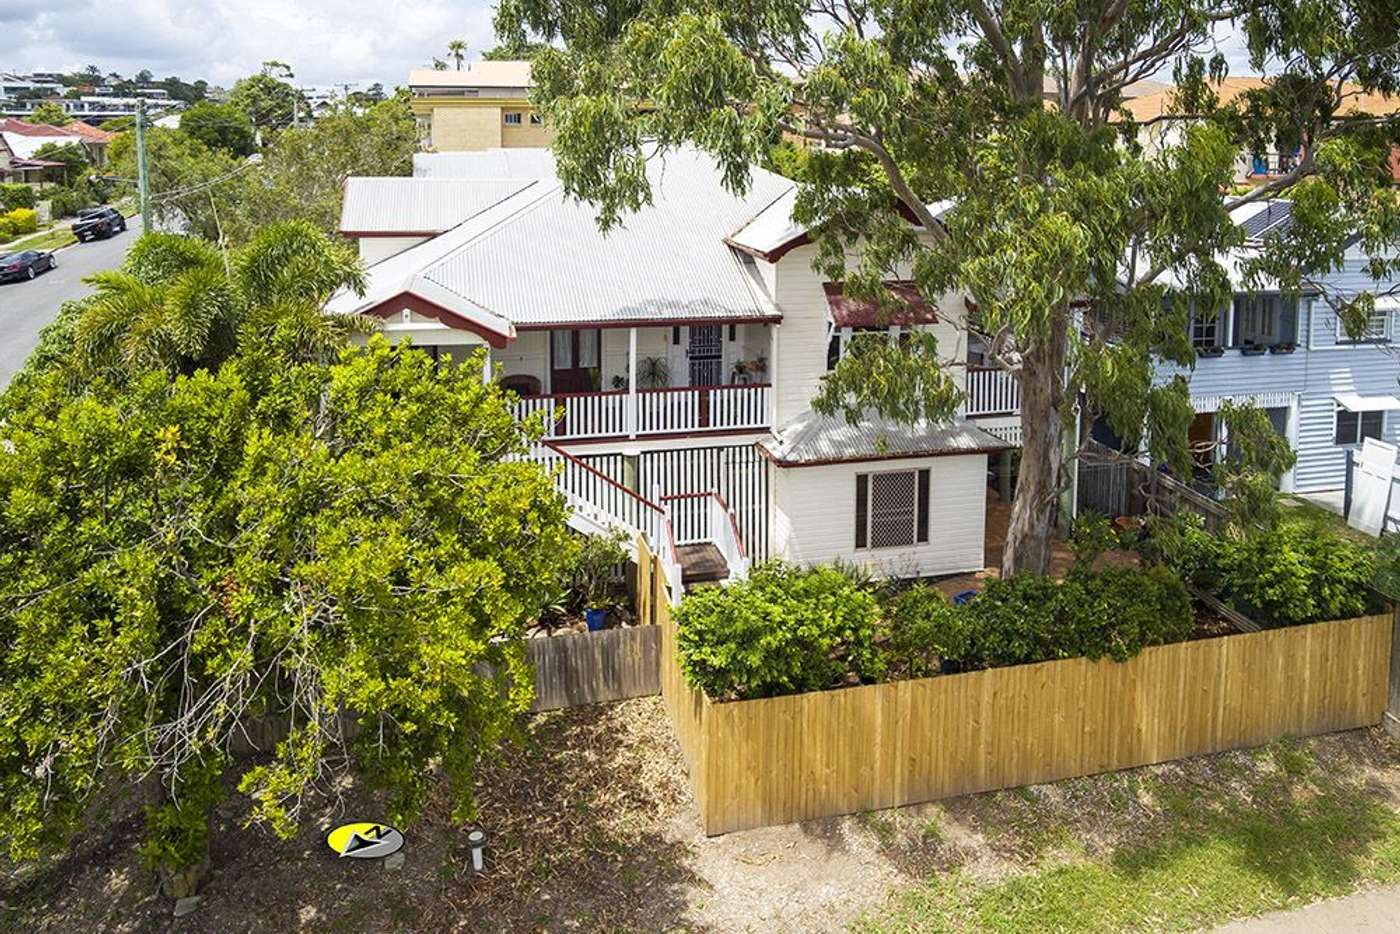 Sixth view of Homely townhouse listing, 1/21 Dansie Street, Greenslopes QLD 4120